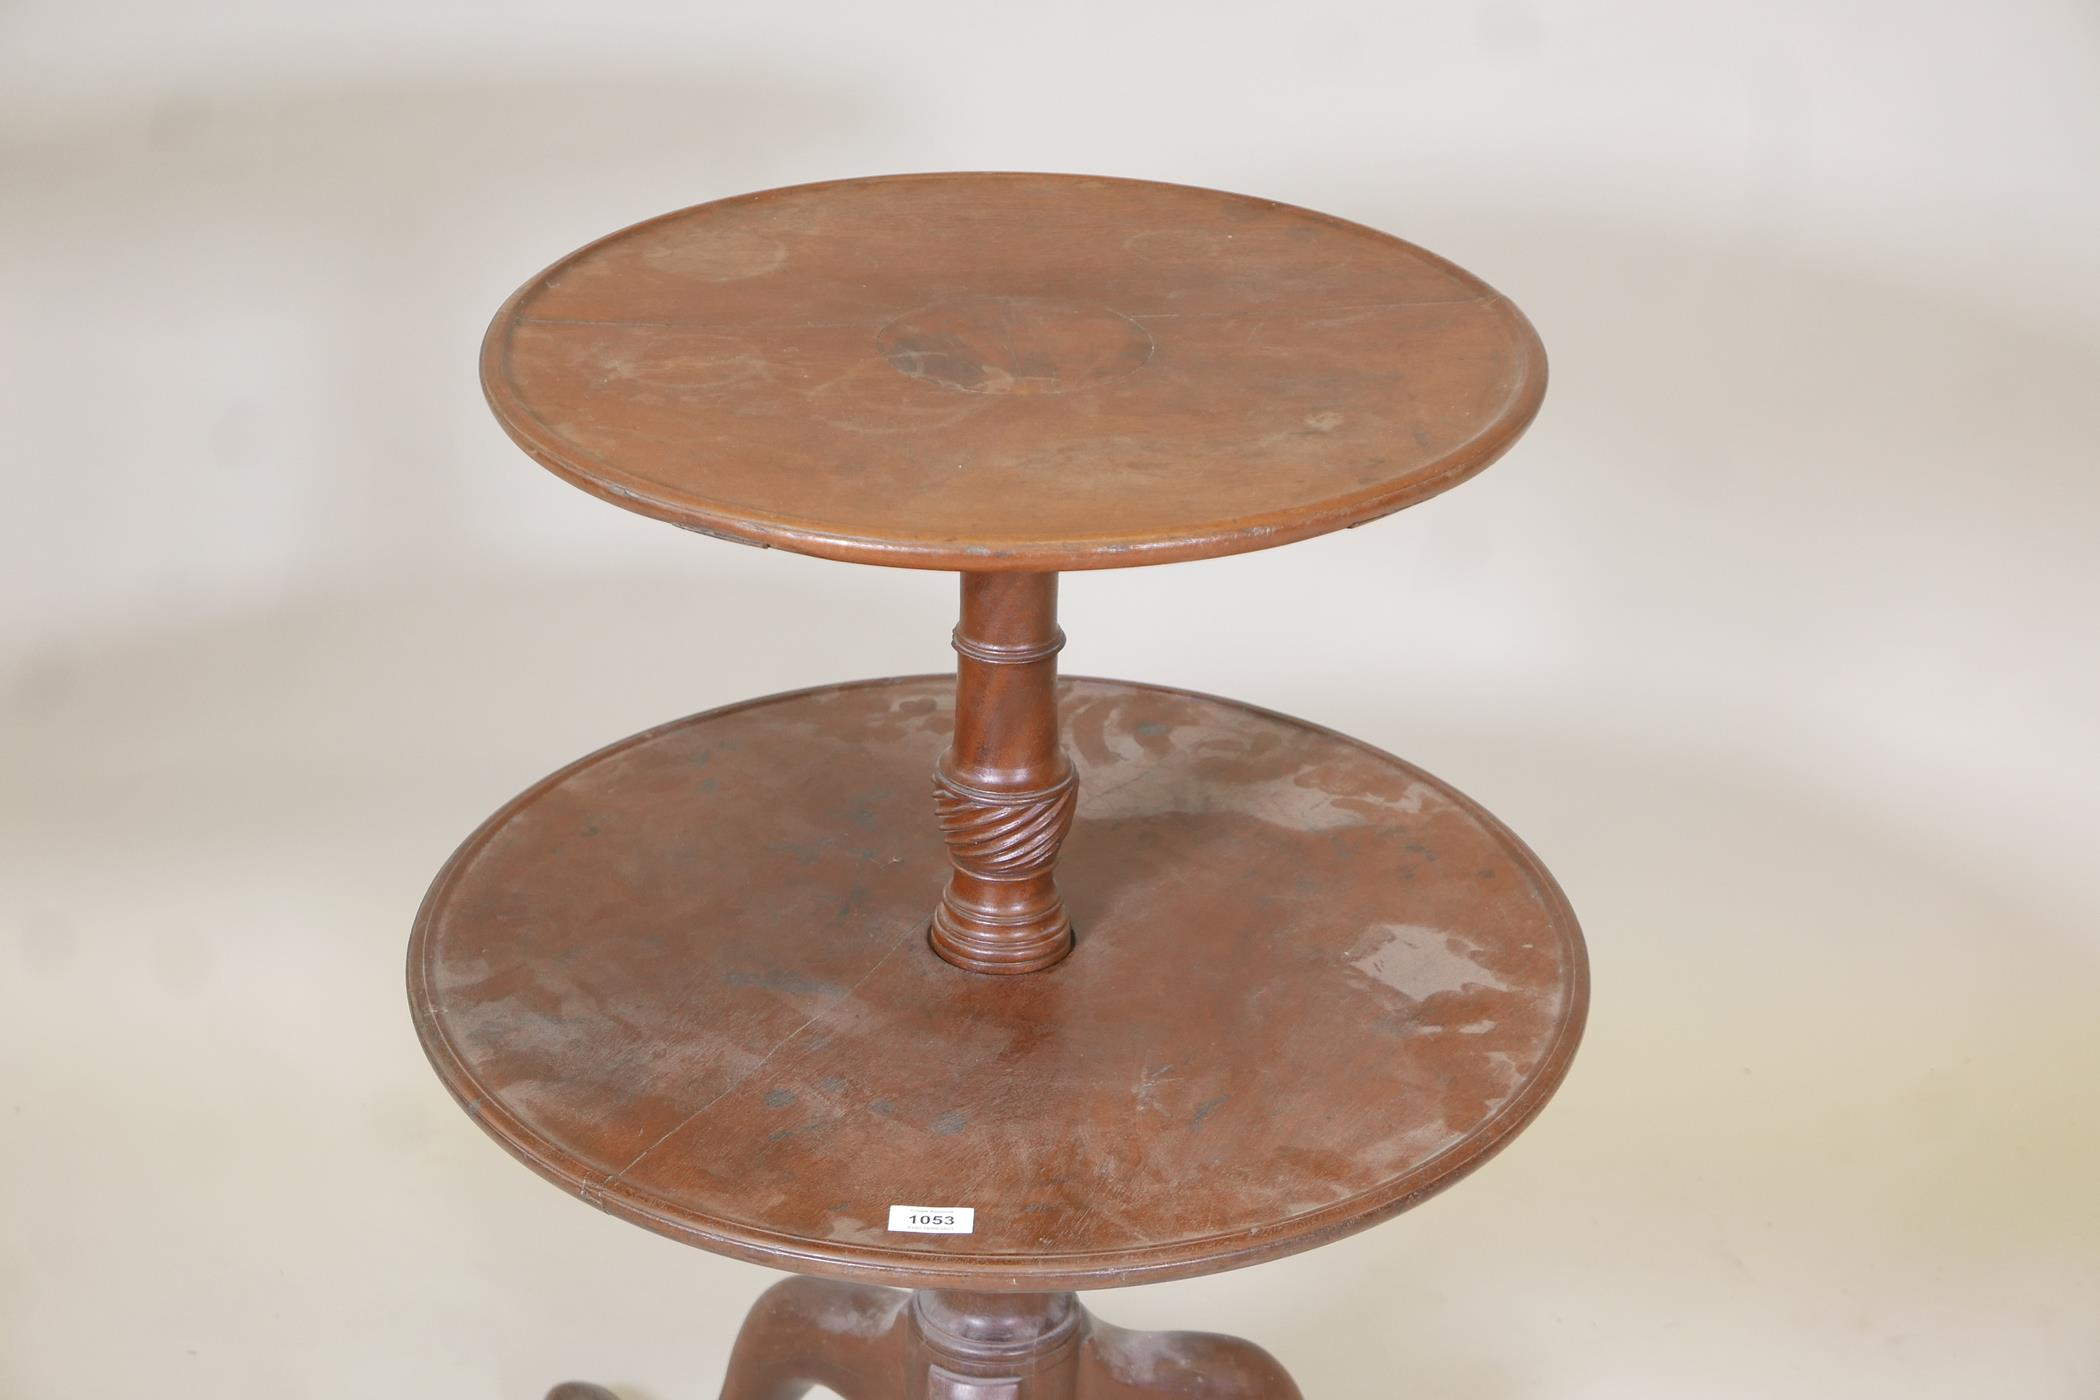 A George III mahogany two tier dumb waiter on a turned and carved column and tripod supports, A/F - Image 2 of 2